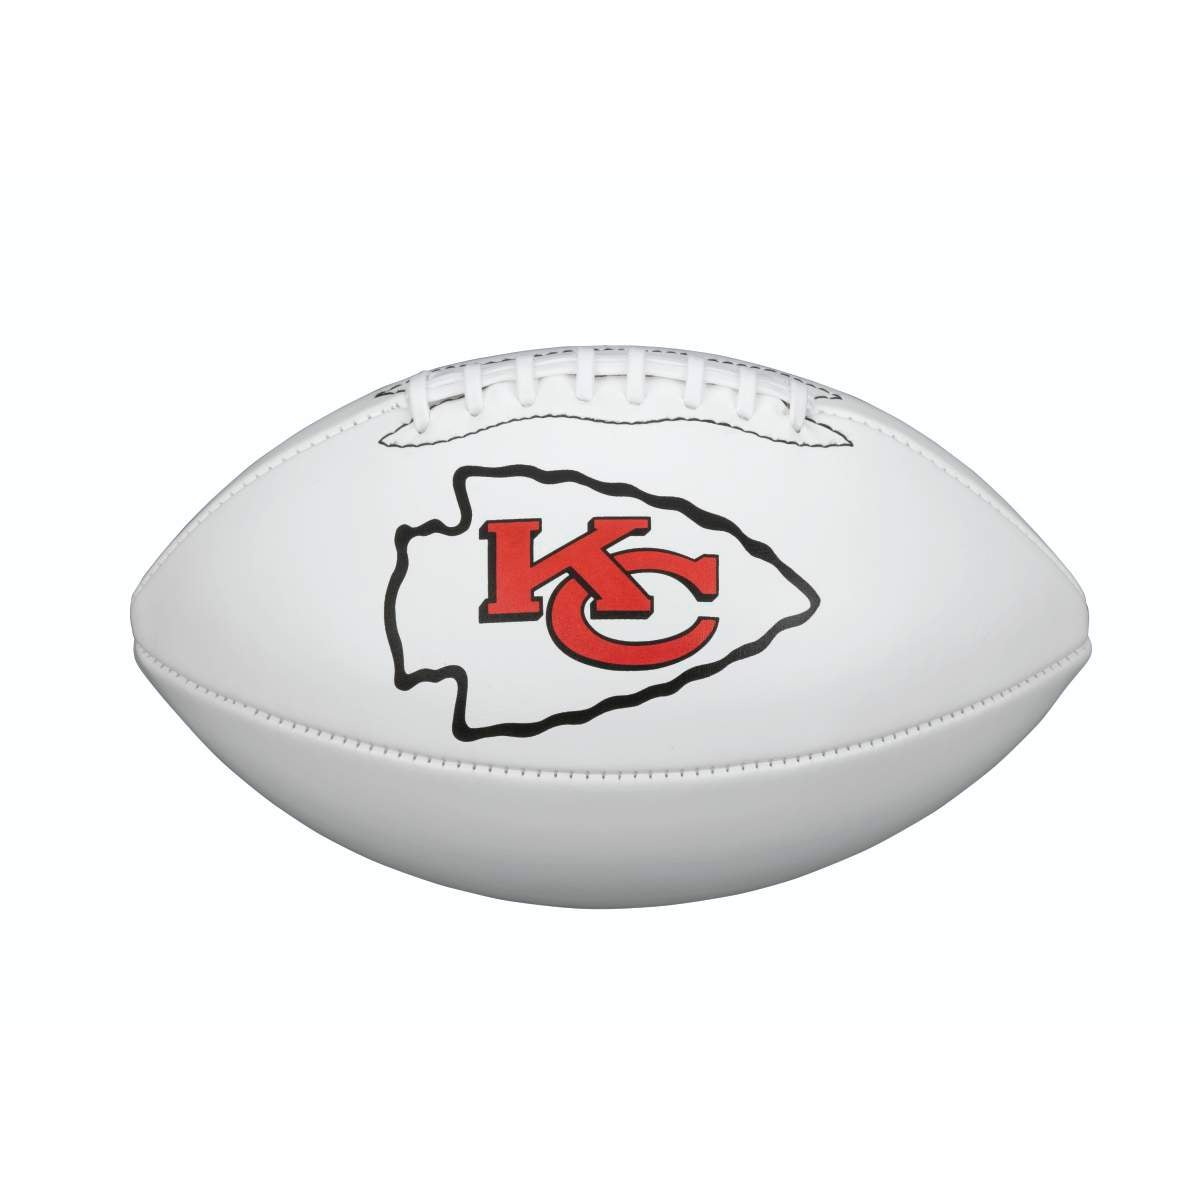 NFL TEAM LOGO AUTOGRAPH FOOTBALL - OFFICIAL, KANSAS CITY CHIEFS